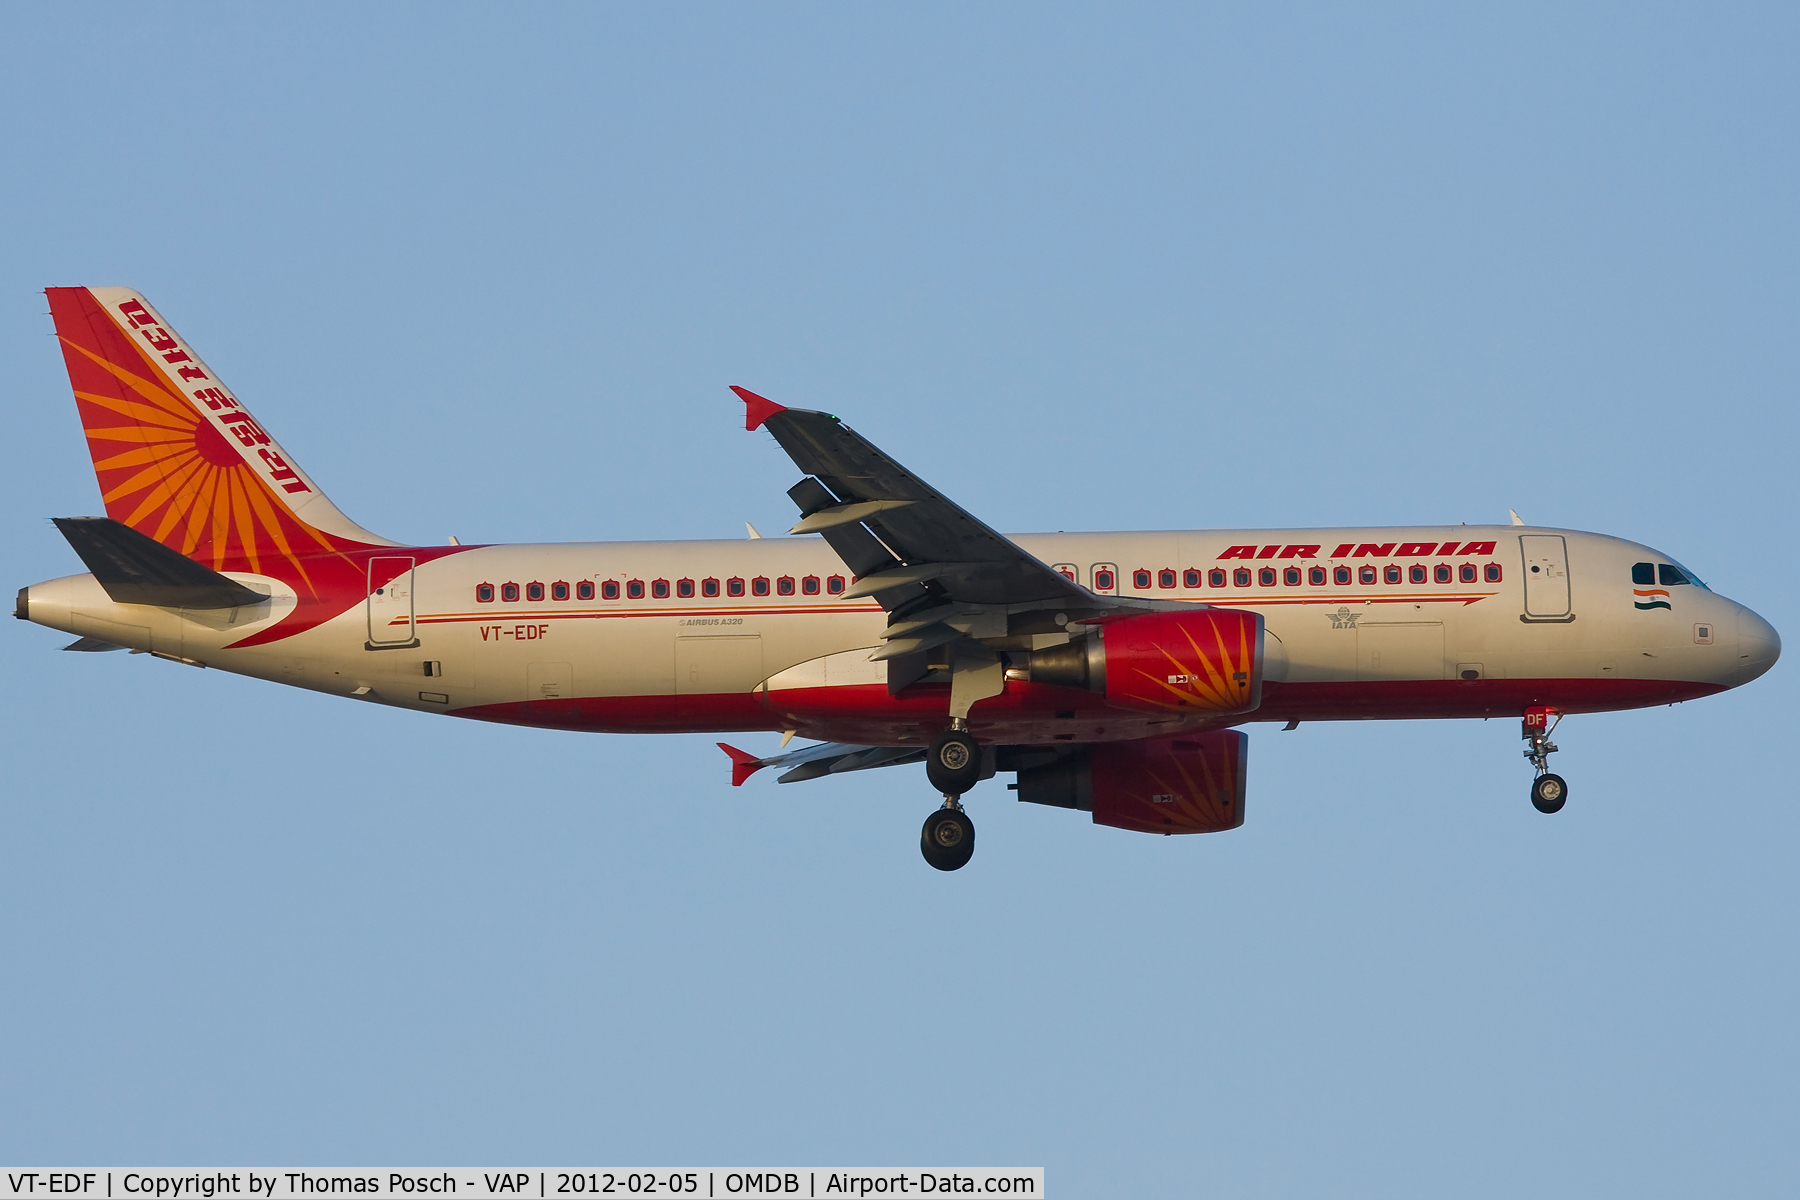 VT-EDF, 2010 Airbus A320-214 C/N 4237, Air India